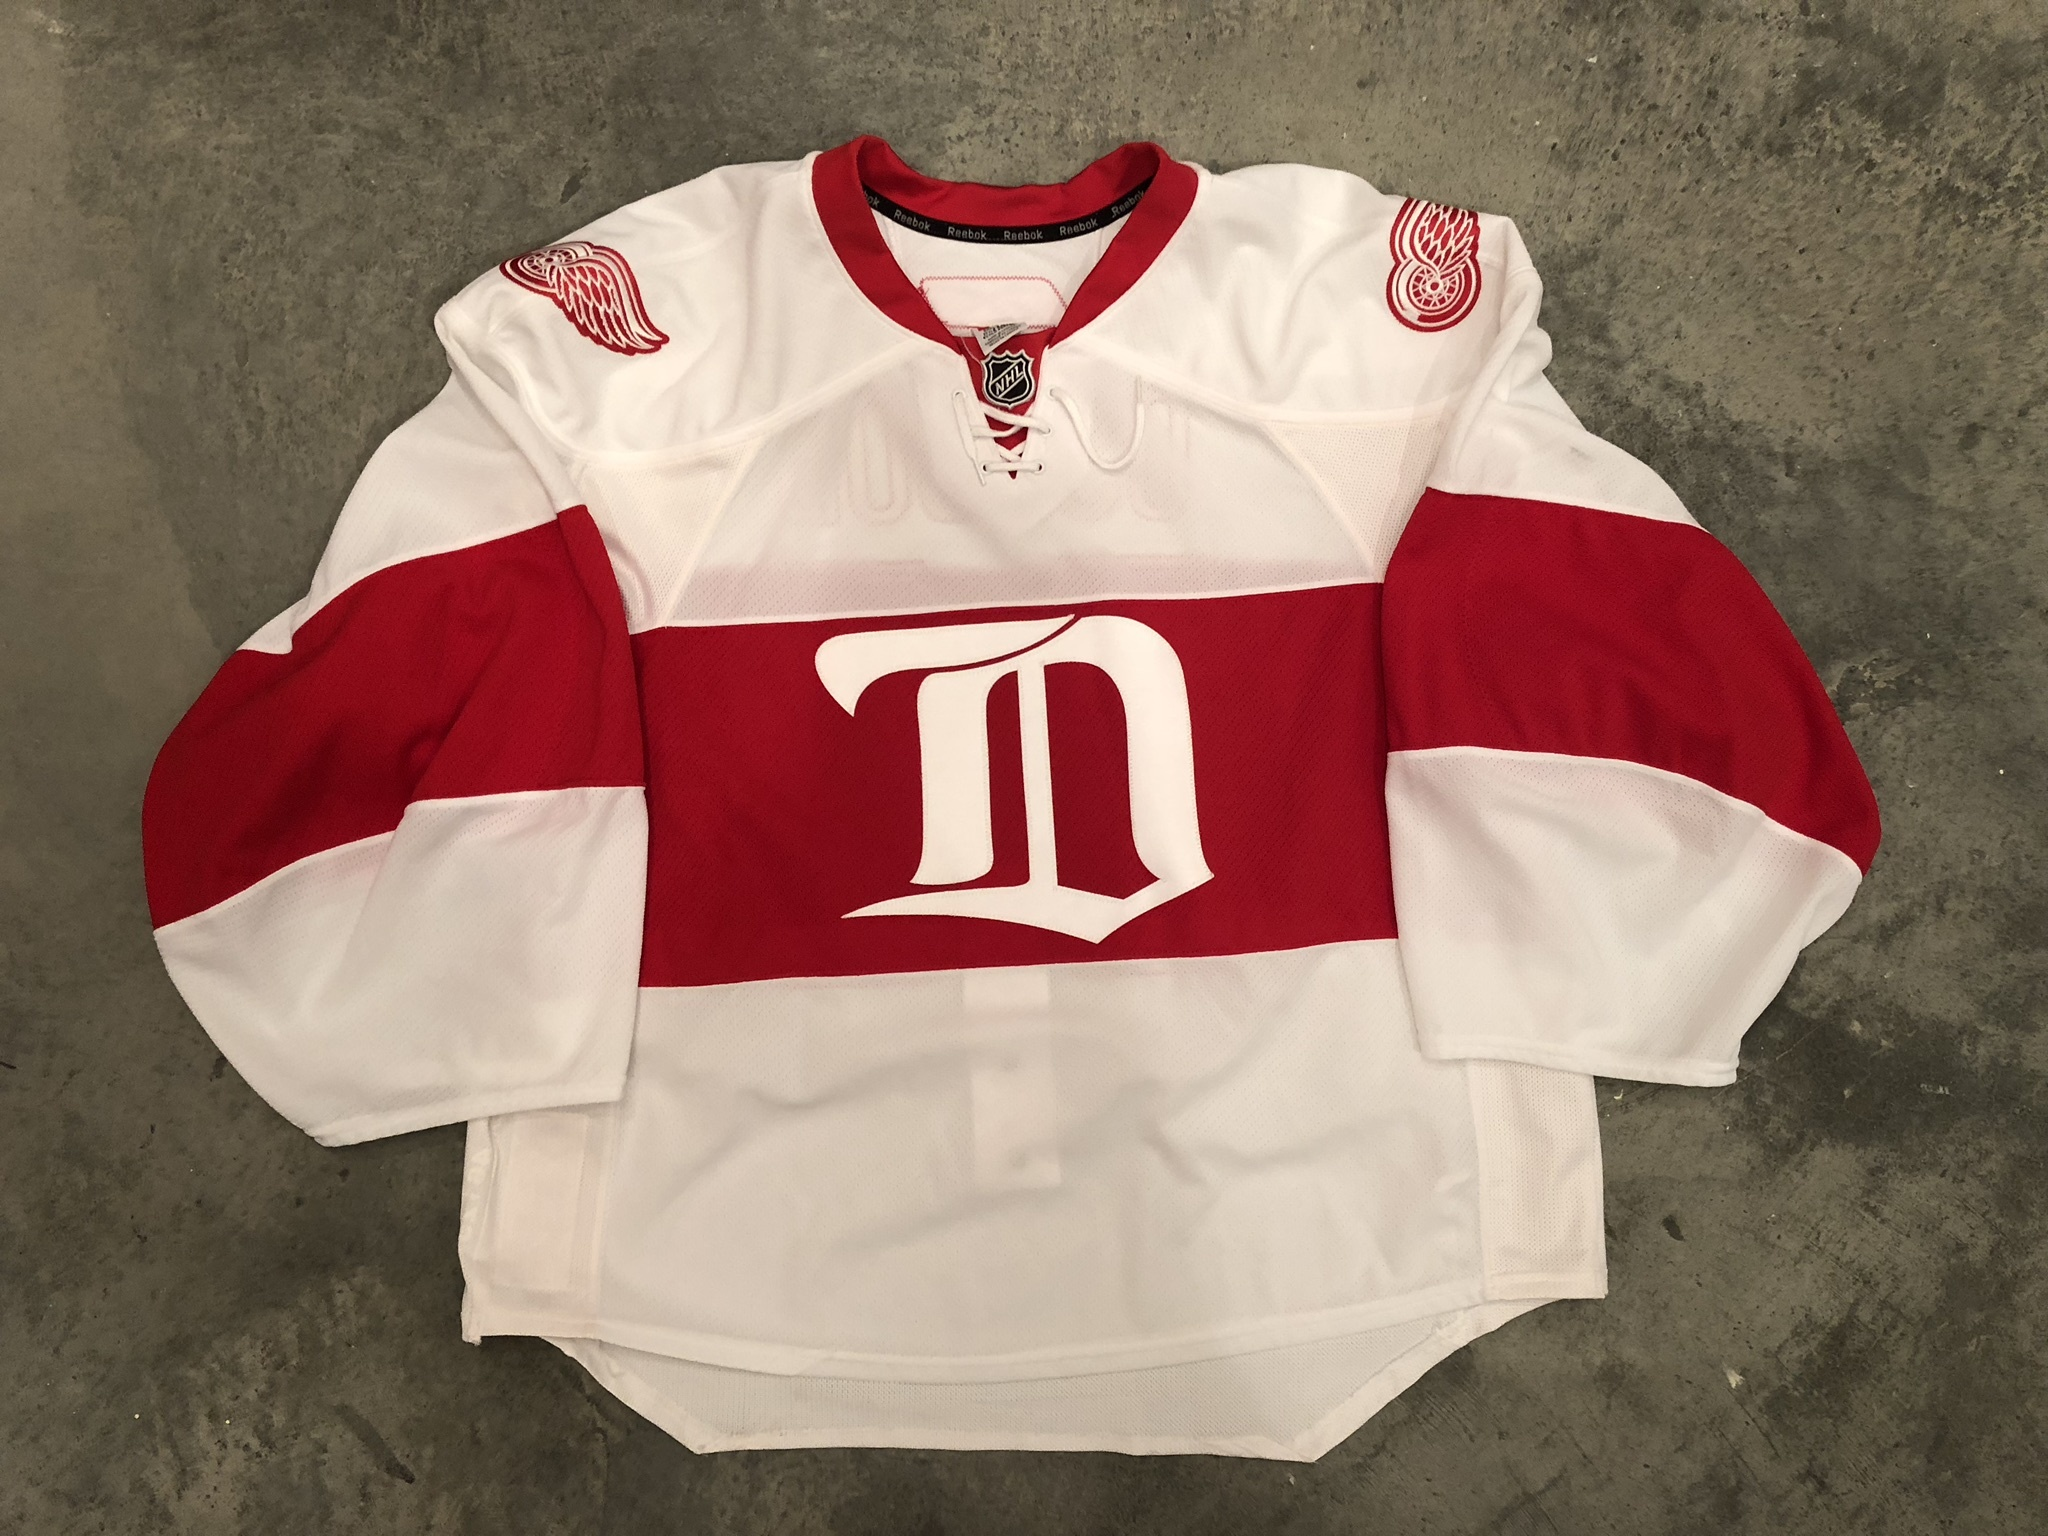 2008-09 Chris Osgood Detroit Red Wings Heritage Game Worn Jersey